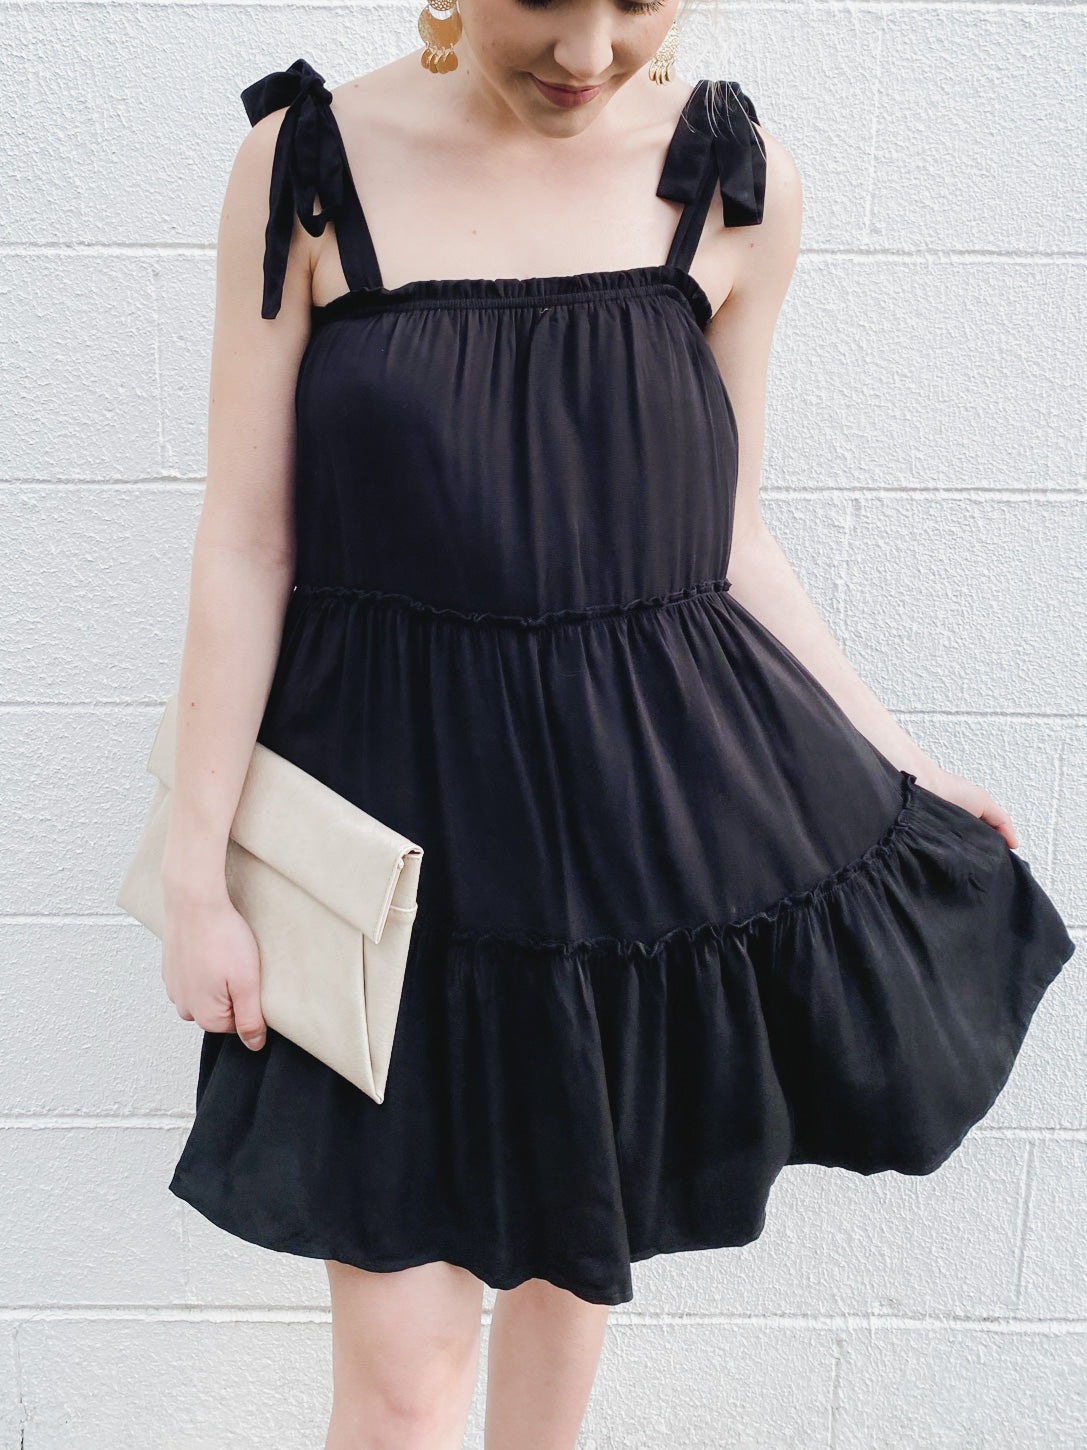 Blushing For You Dress - Black